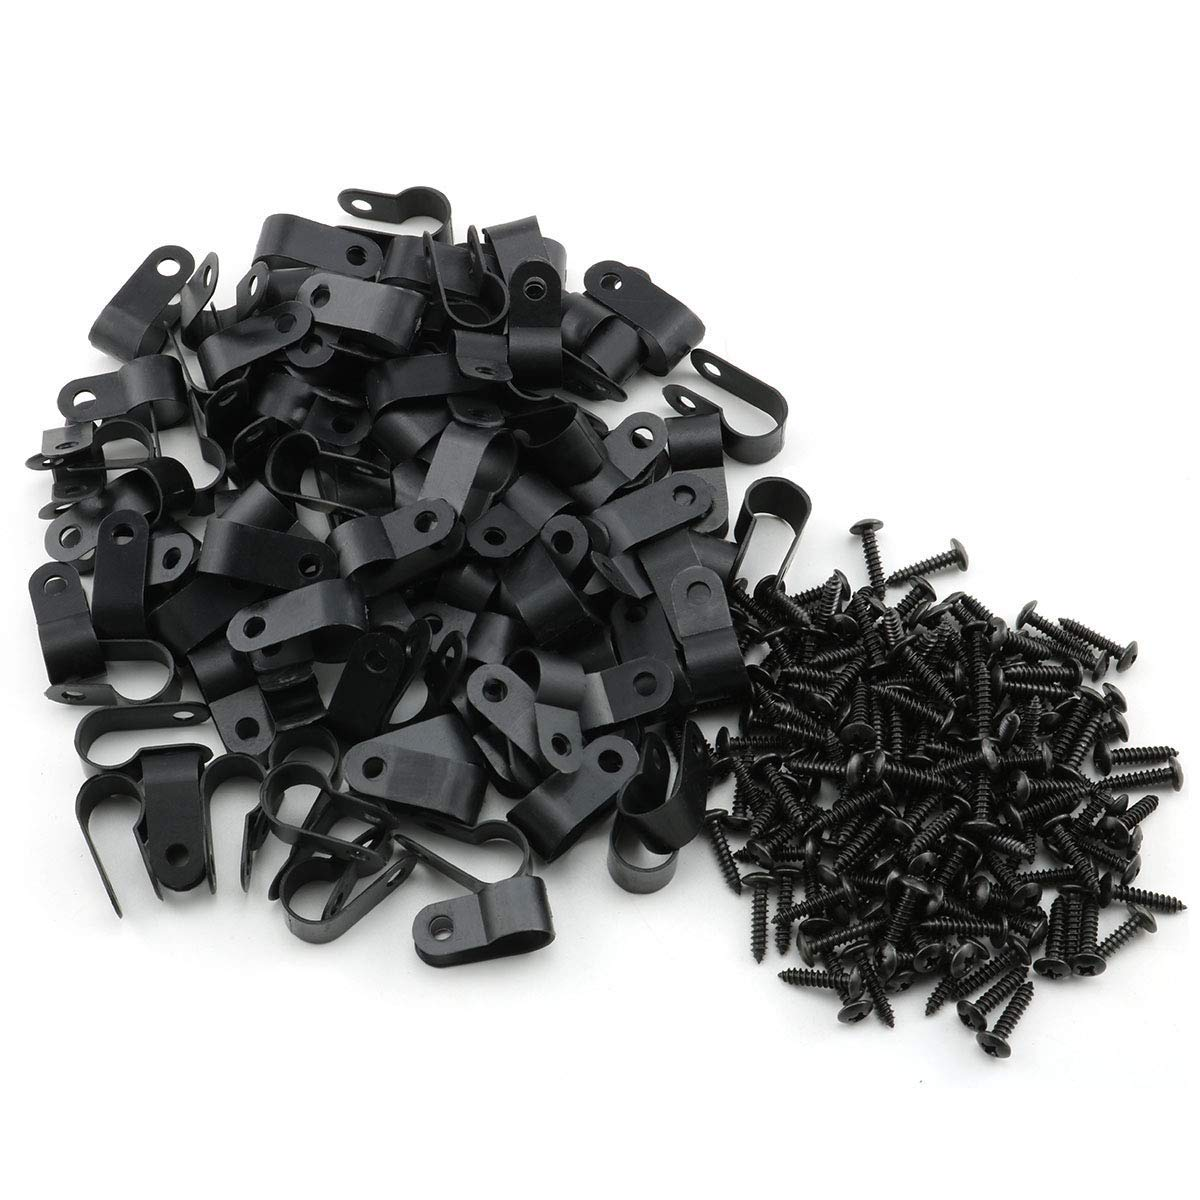 50 Pack 1 inch Home Nylon Mounting Cable Fastener Wire Clips Electrical Grip for Wire Management Office Wire Organizer Black Automotive Marine Screws Included Kyriad R-Type Clip Clamp